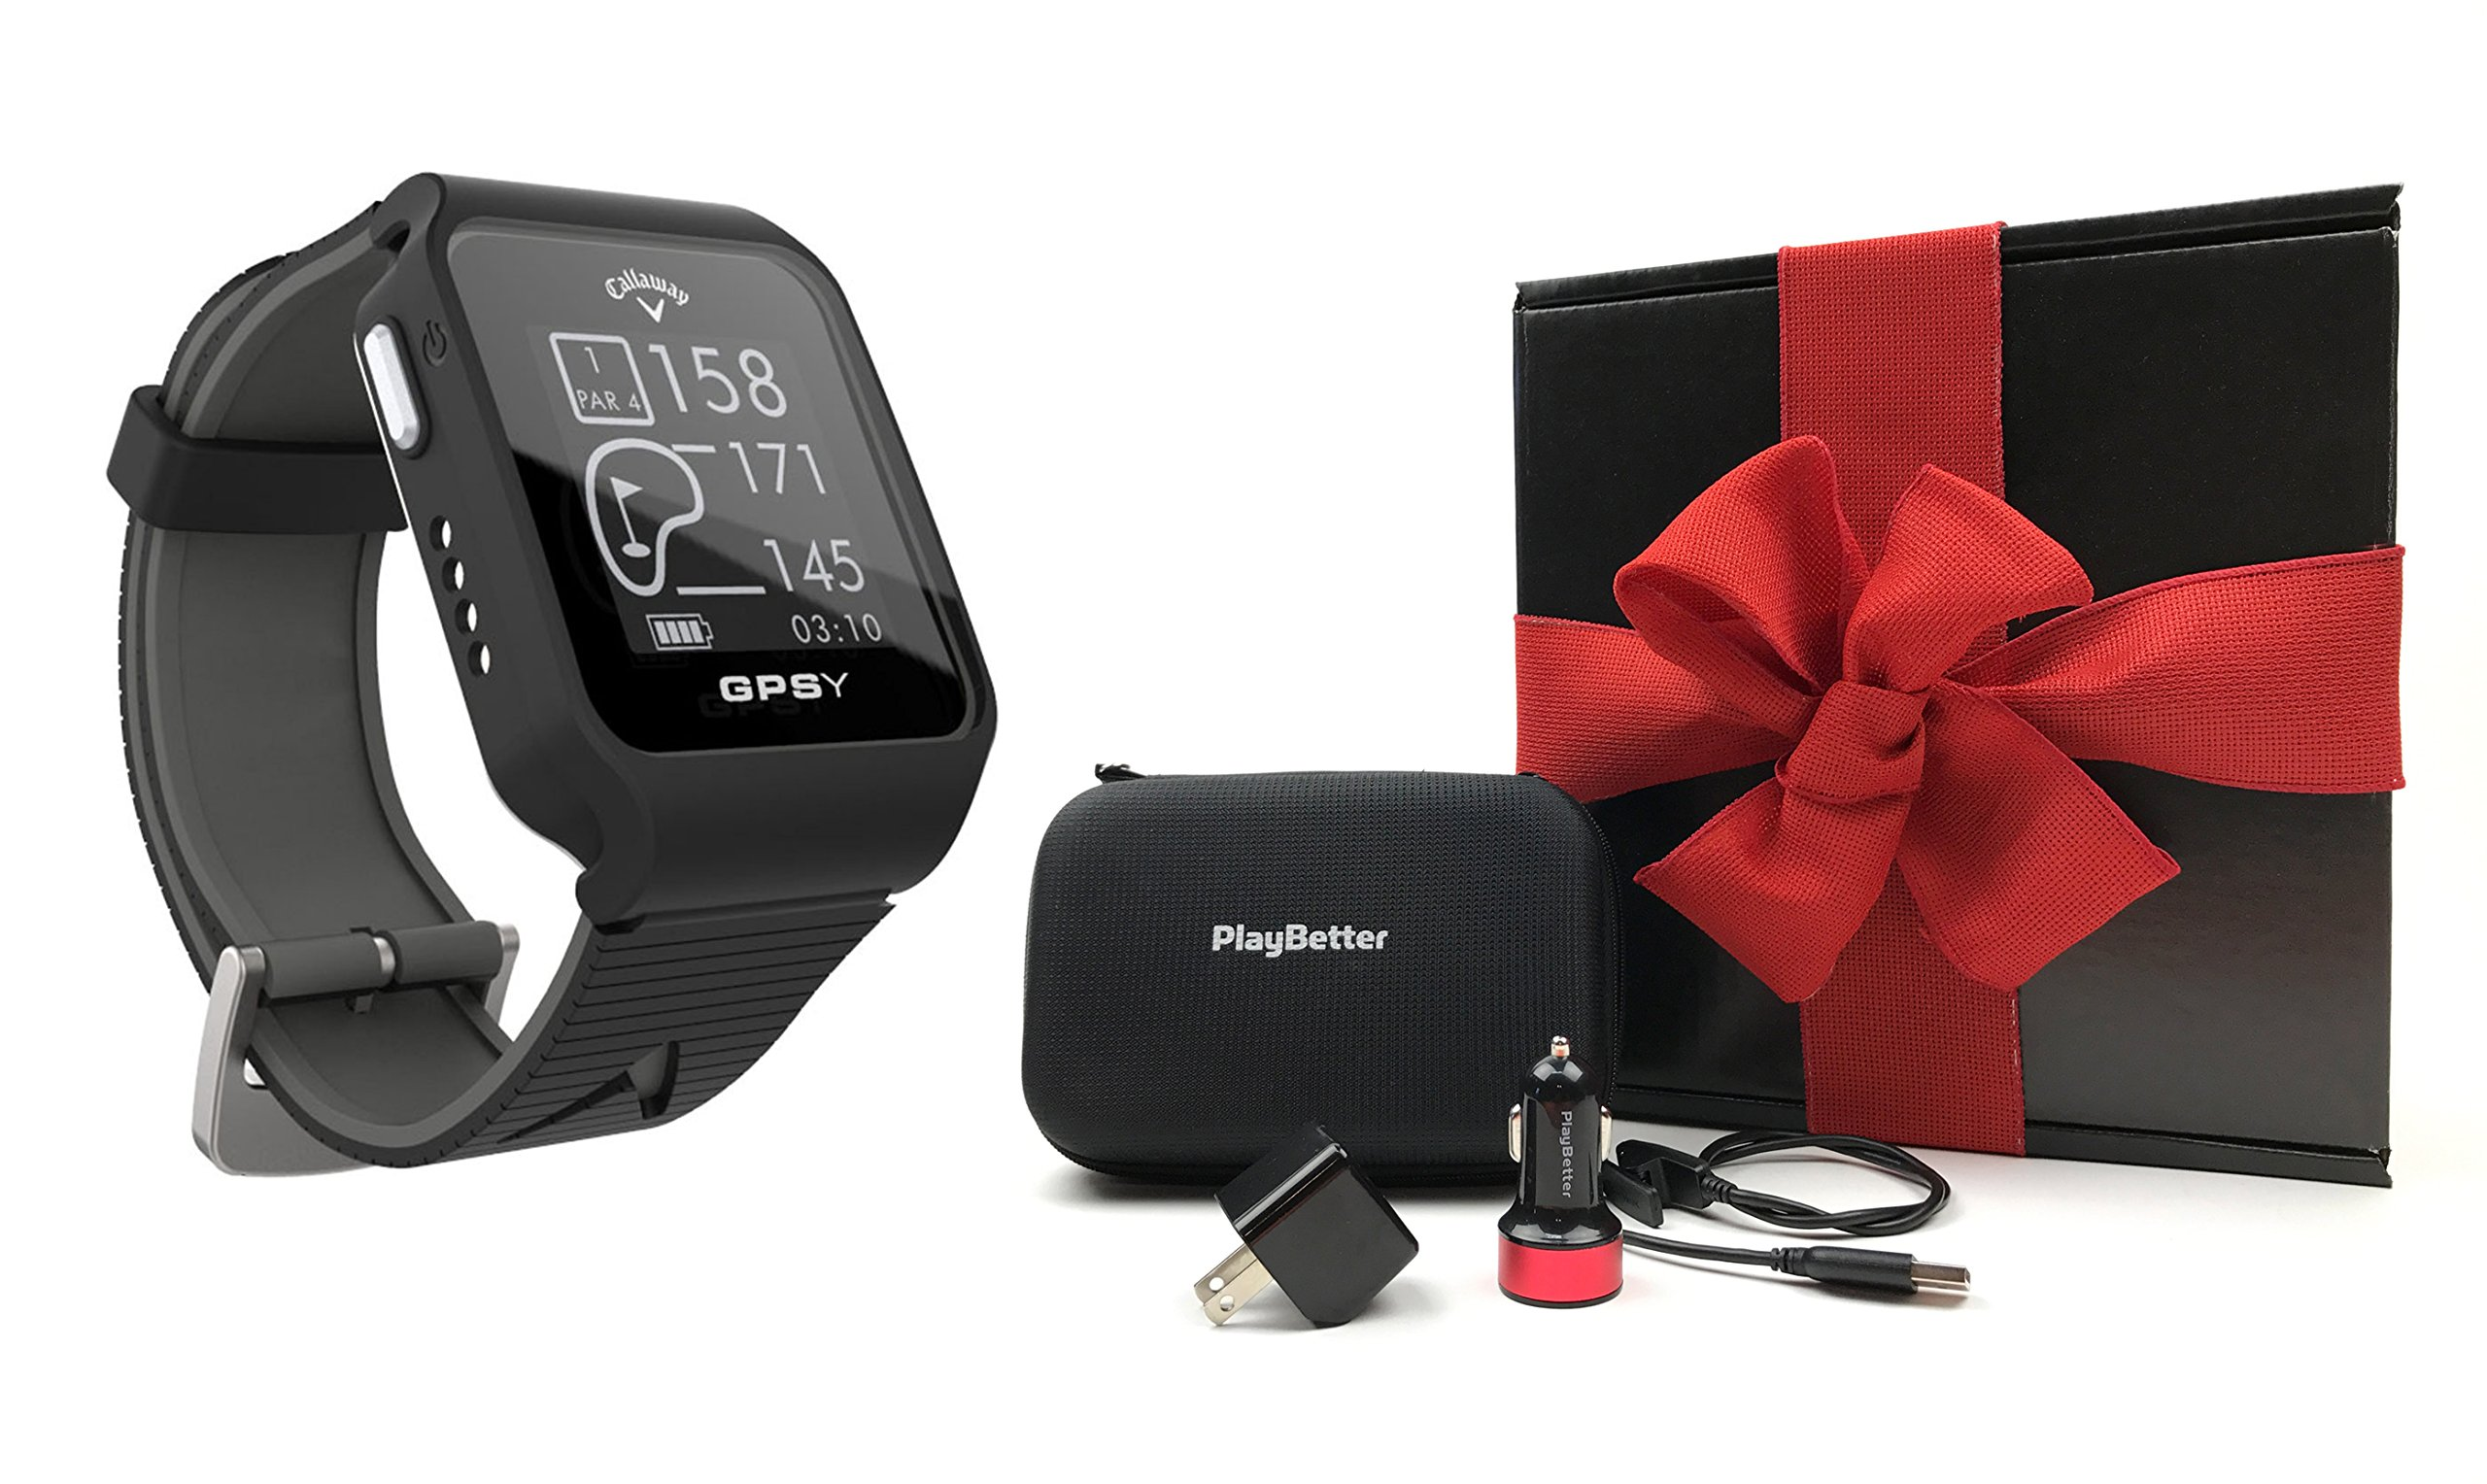 Callaway GPSy (Black) Golf GPS Watch Gift Box Bundle | Includes Callaway Golf GPS Watch, PlayBetter USB Car & Wall Charging Adapters, Protective Hard Carrying Case